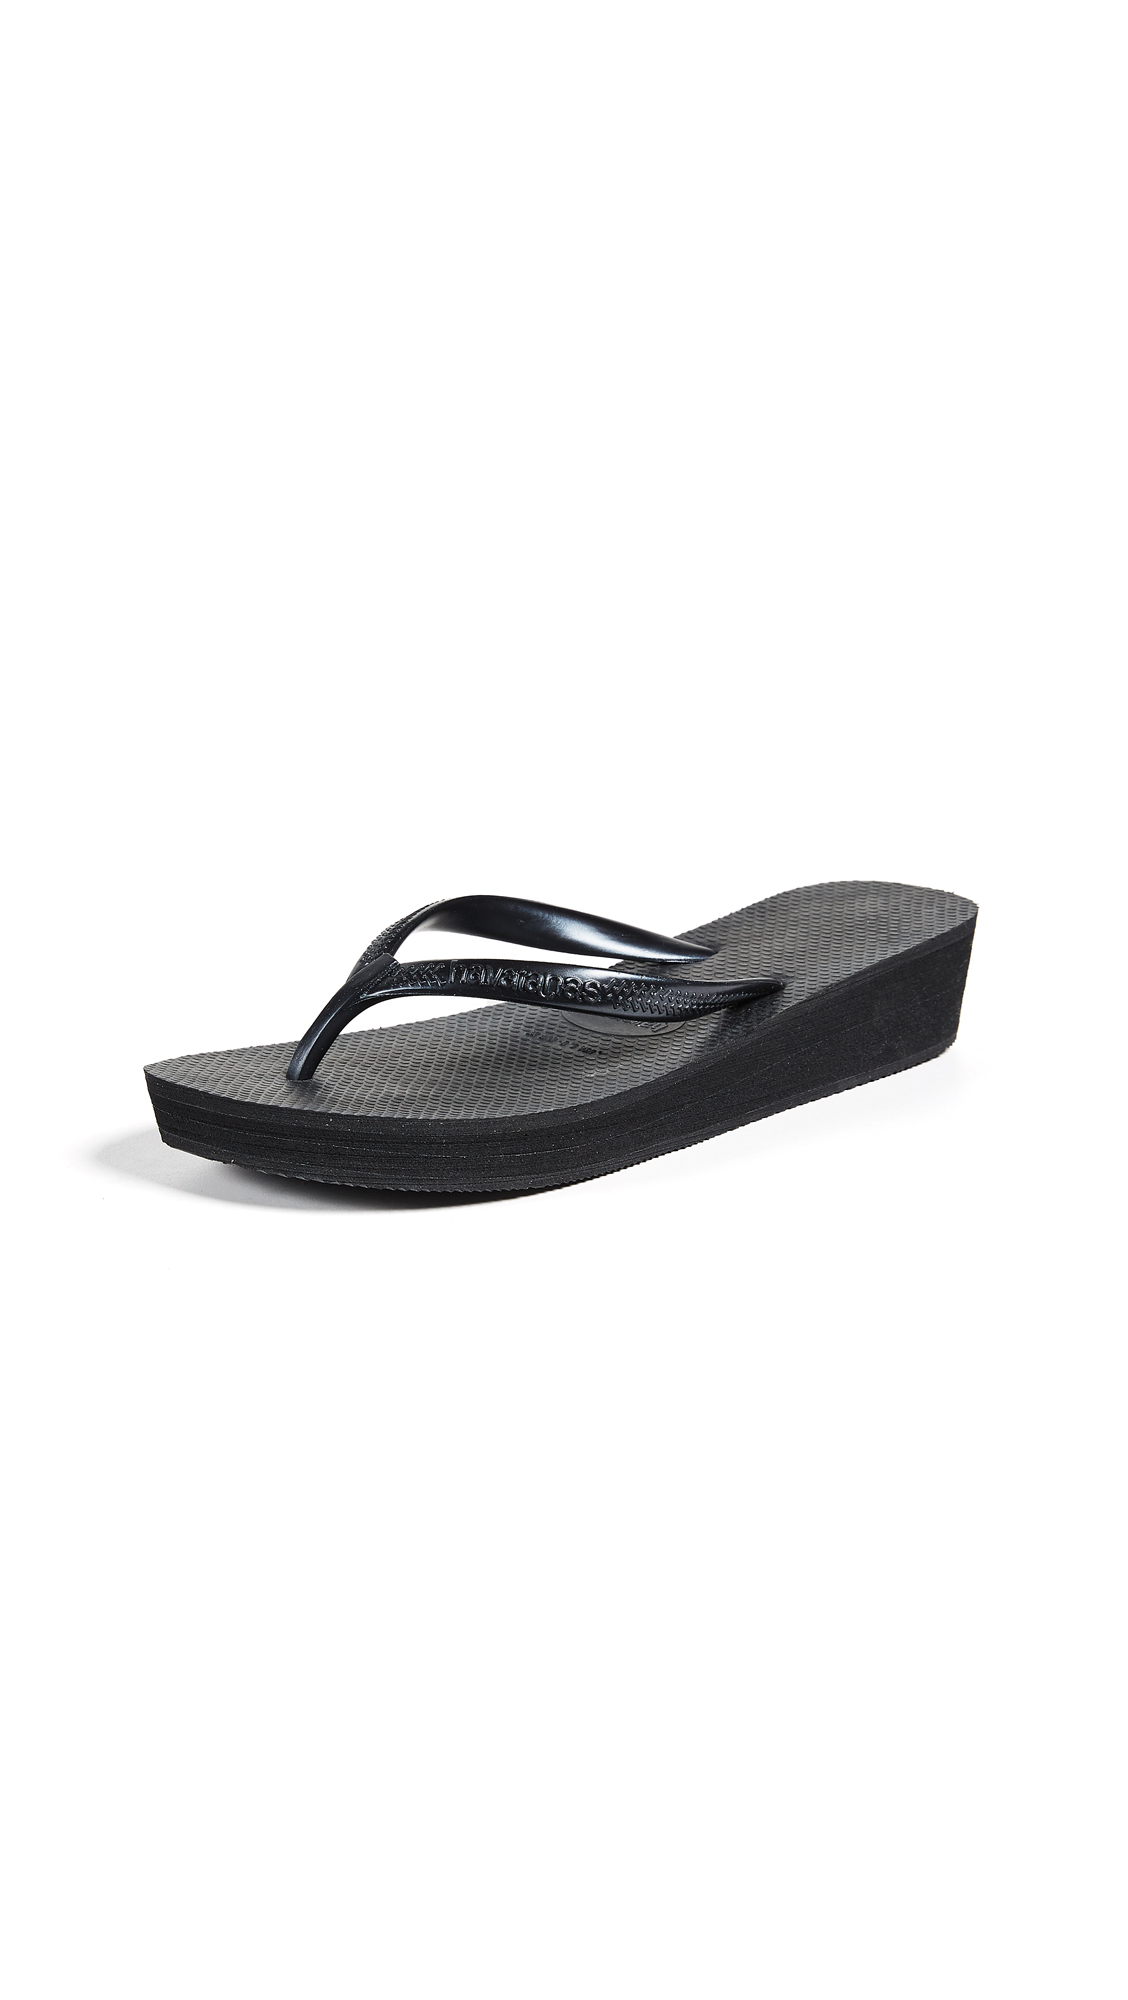 Havaianas High Light Wedge Flip Flop - Black